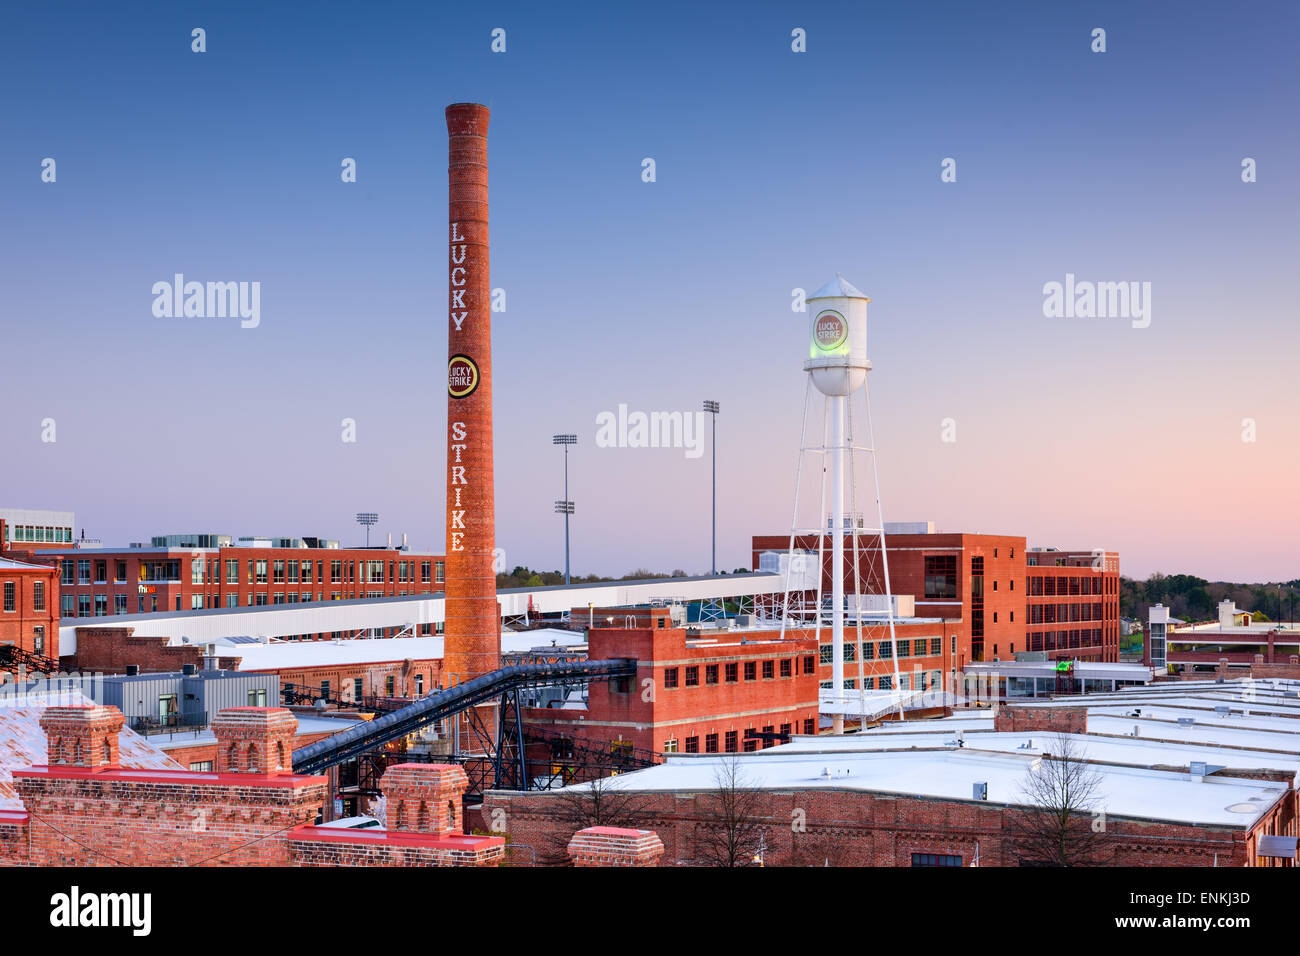 Durham, North Carolina, USA at The American Tobacco Historic District. - Stock Image